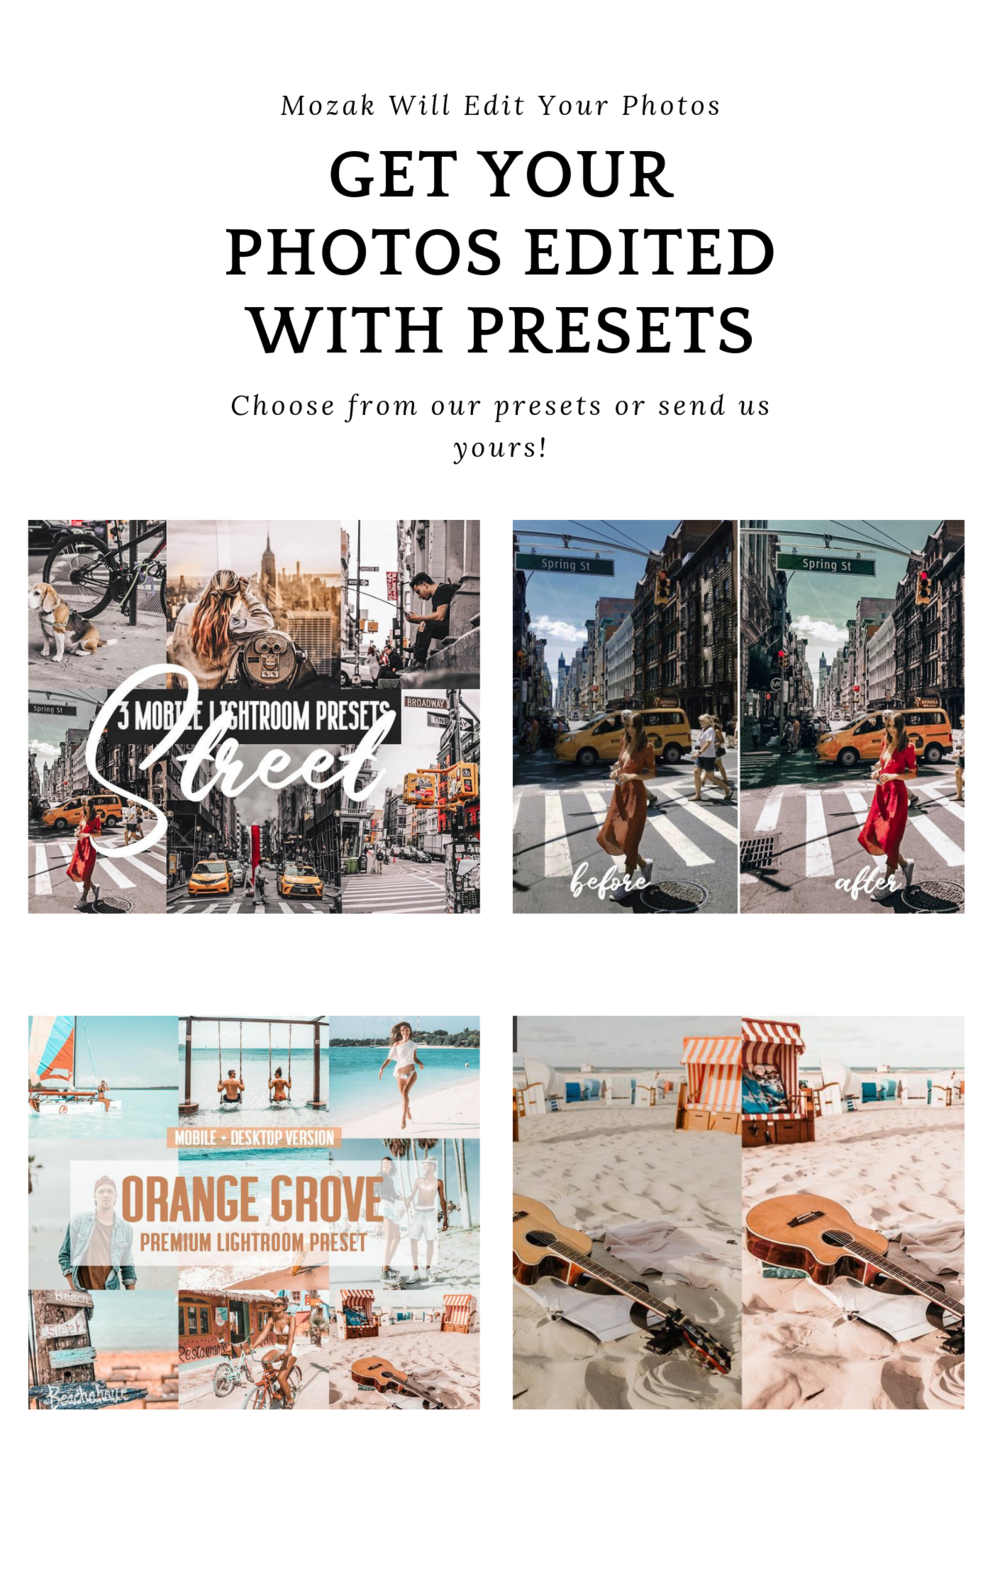 personal photos edited presets & filters - Choose from our presets or simply upload your own preset.